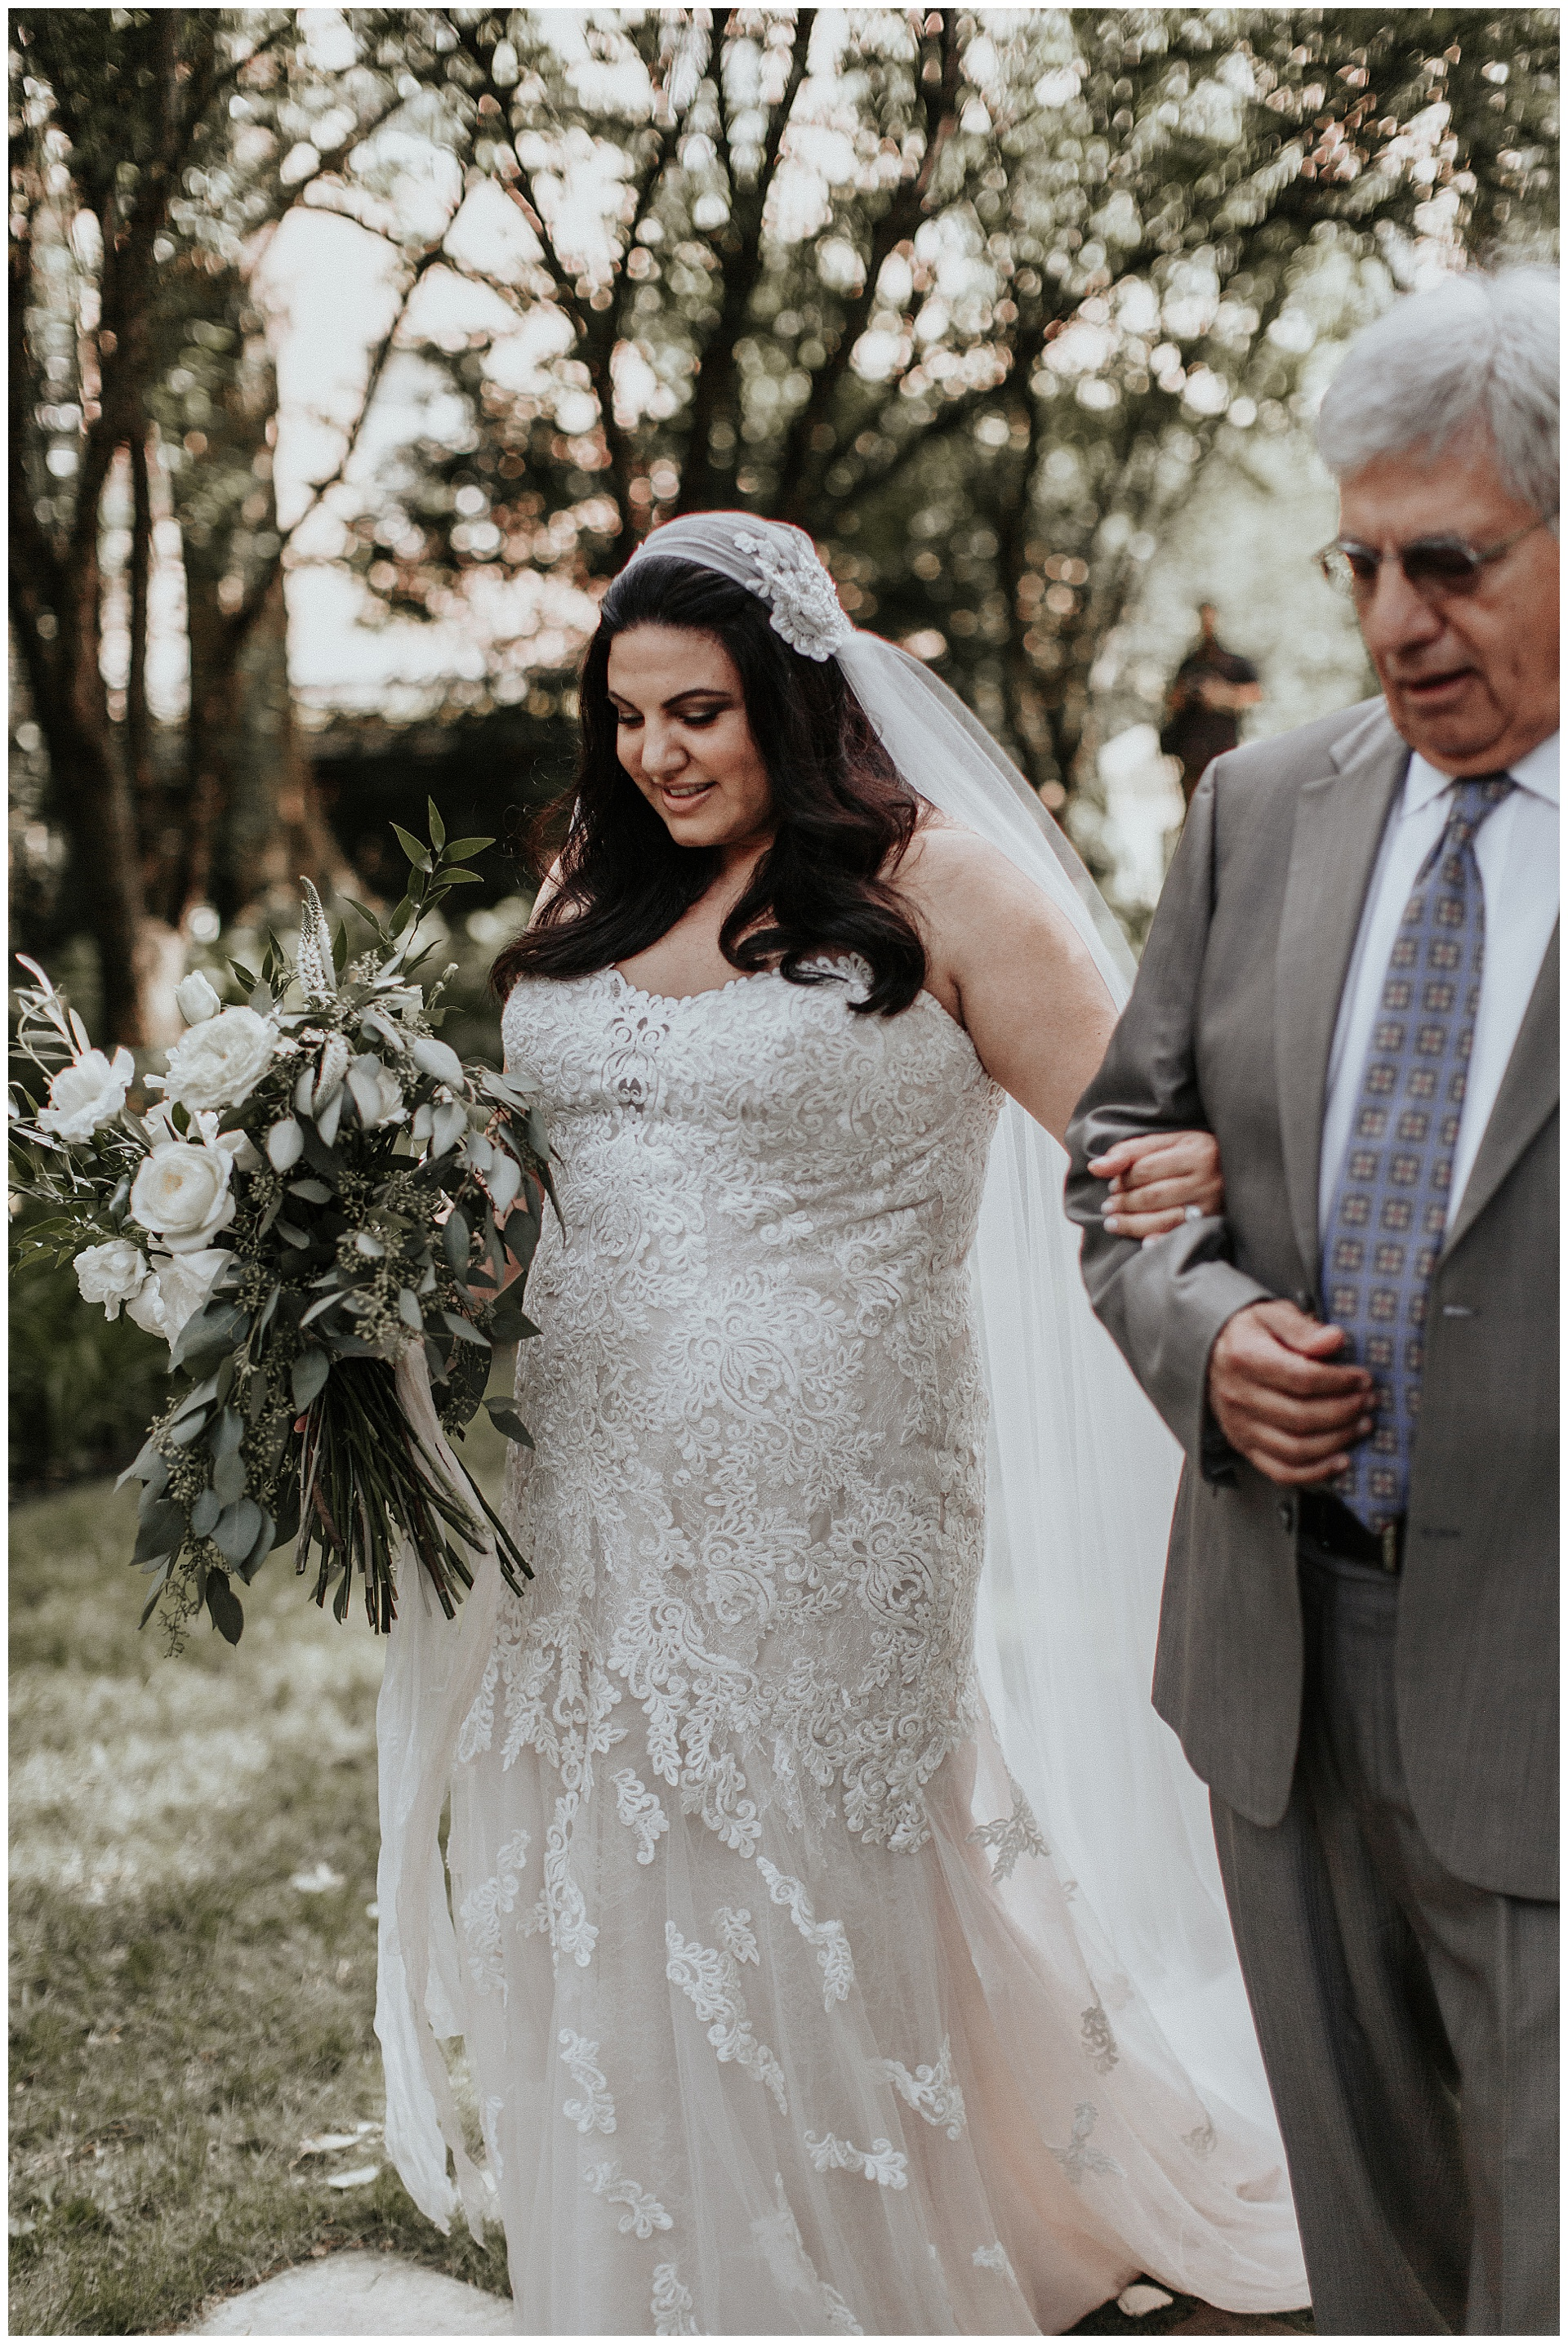 kelton house wedding columbus ohio_mia dimare photo23.jpg